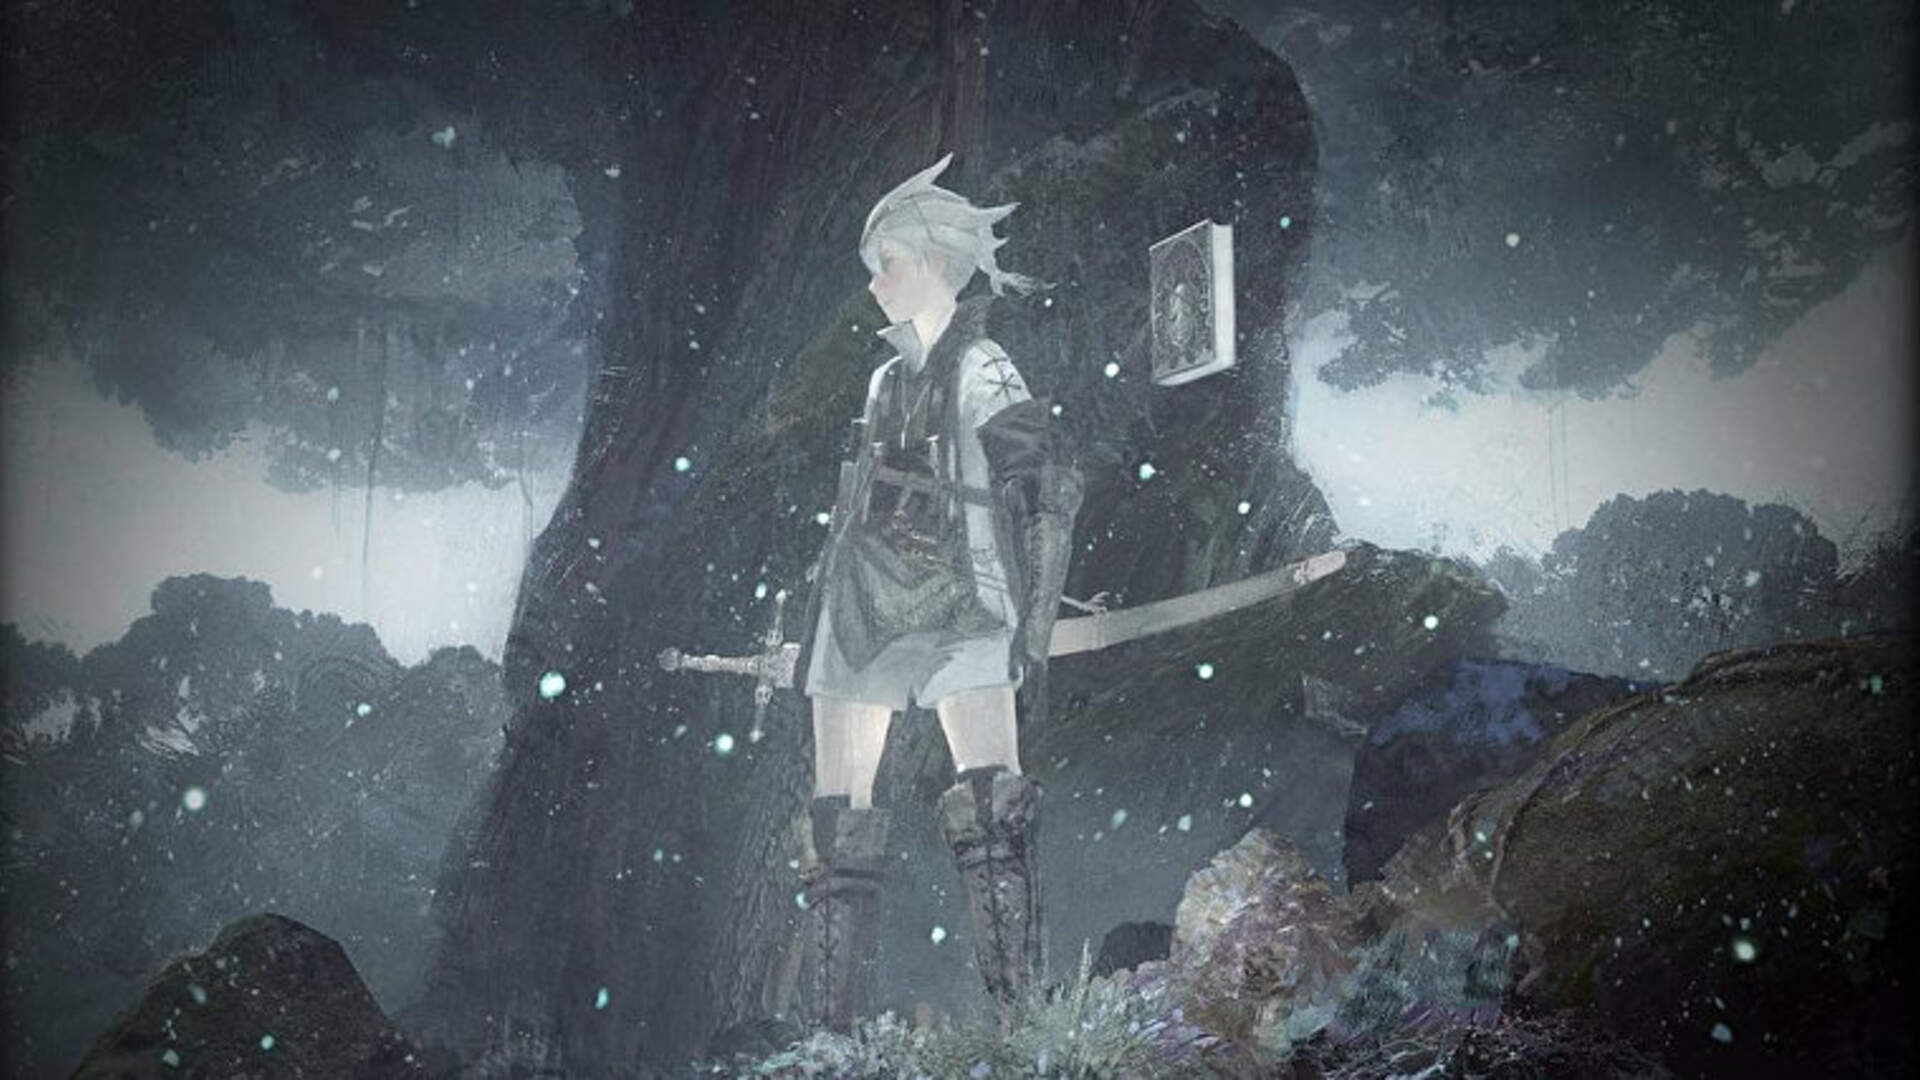 Nier Replicant Remaster Announced, Bringing a Forgotten Classic to Modern Consoles